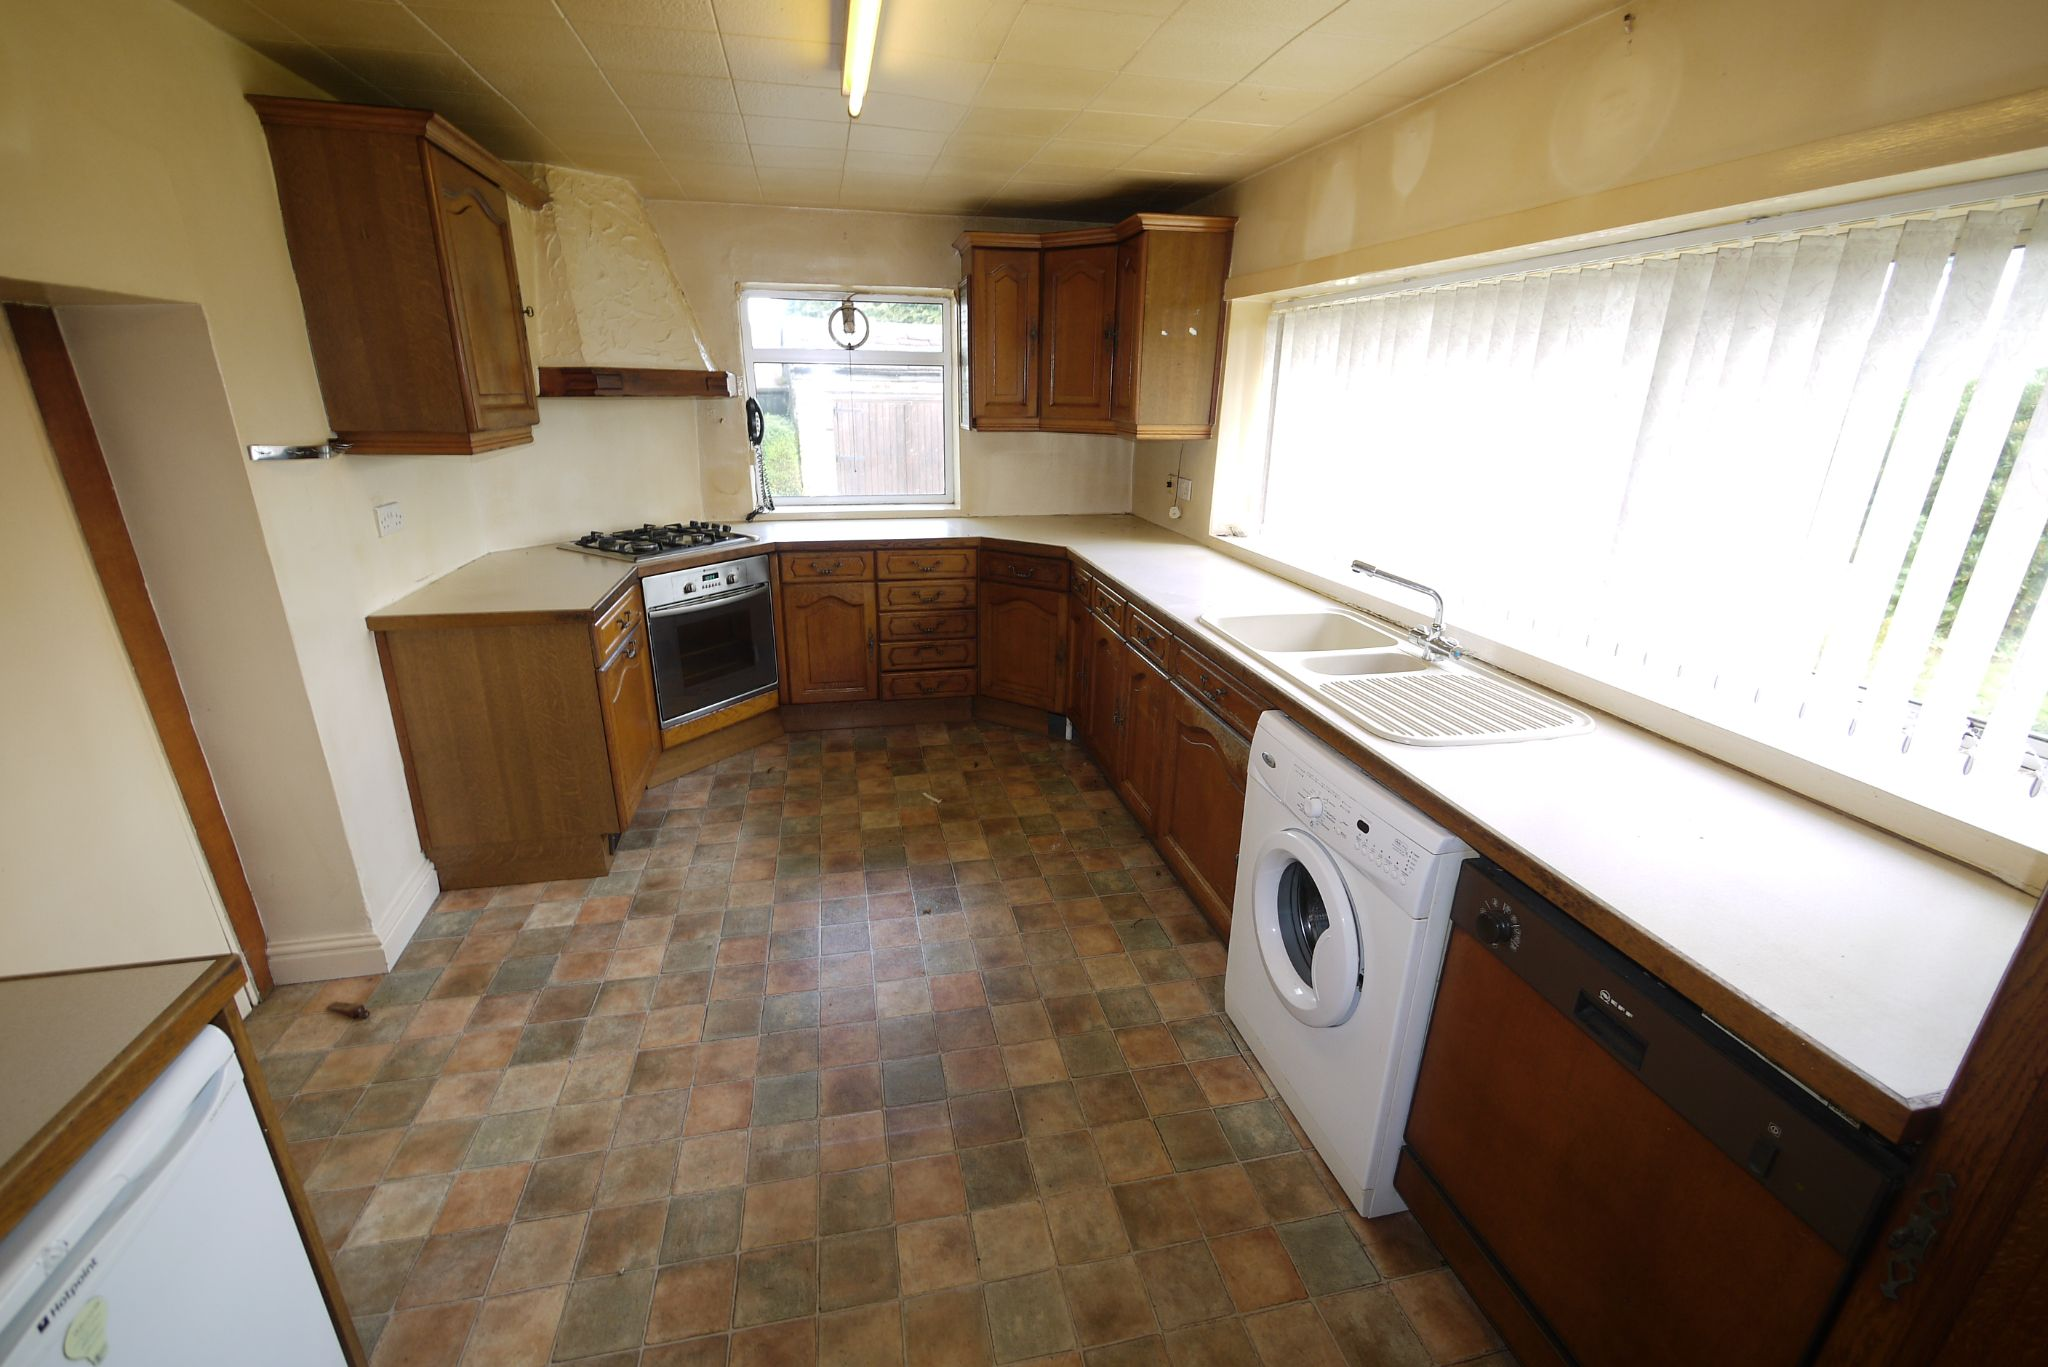 3 bedroom cottage house SSTC in Brighouse - Photograph 3.